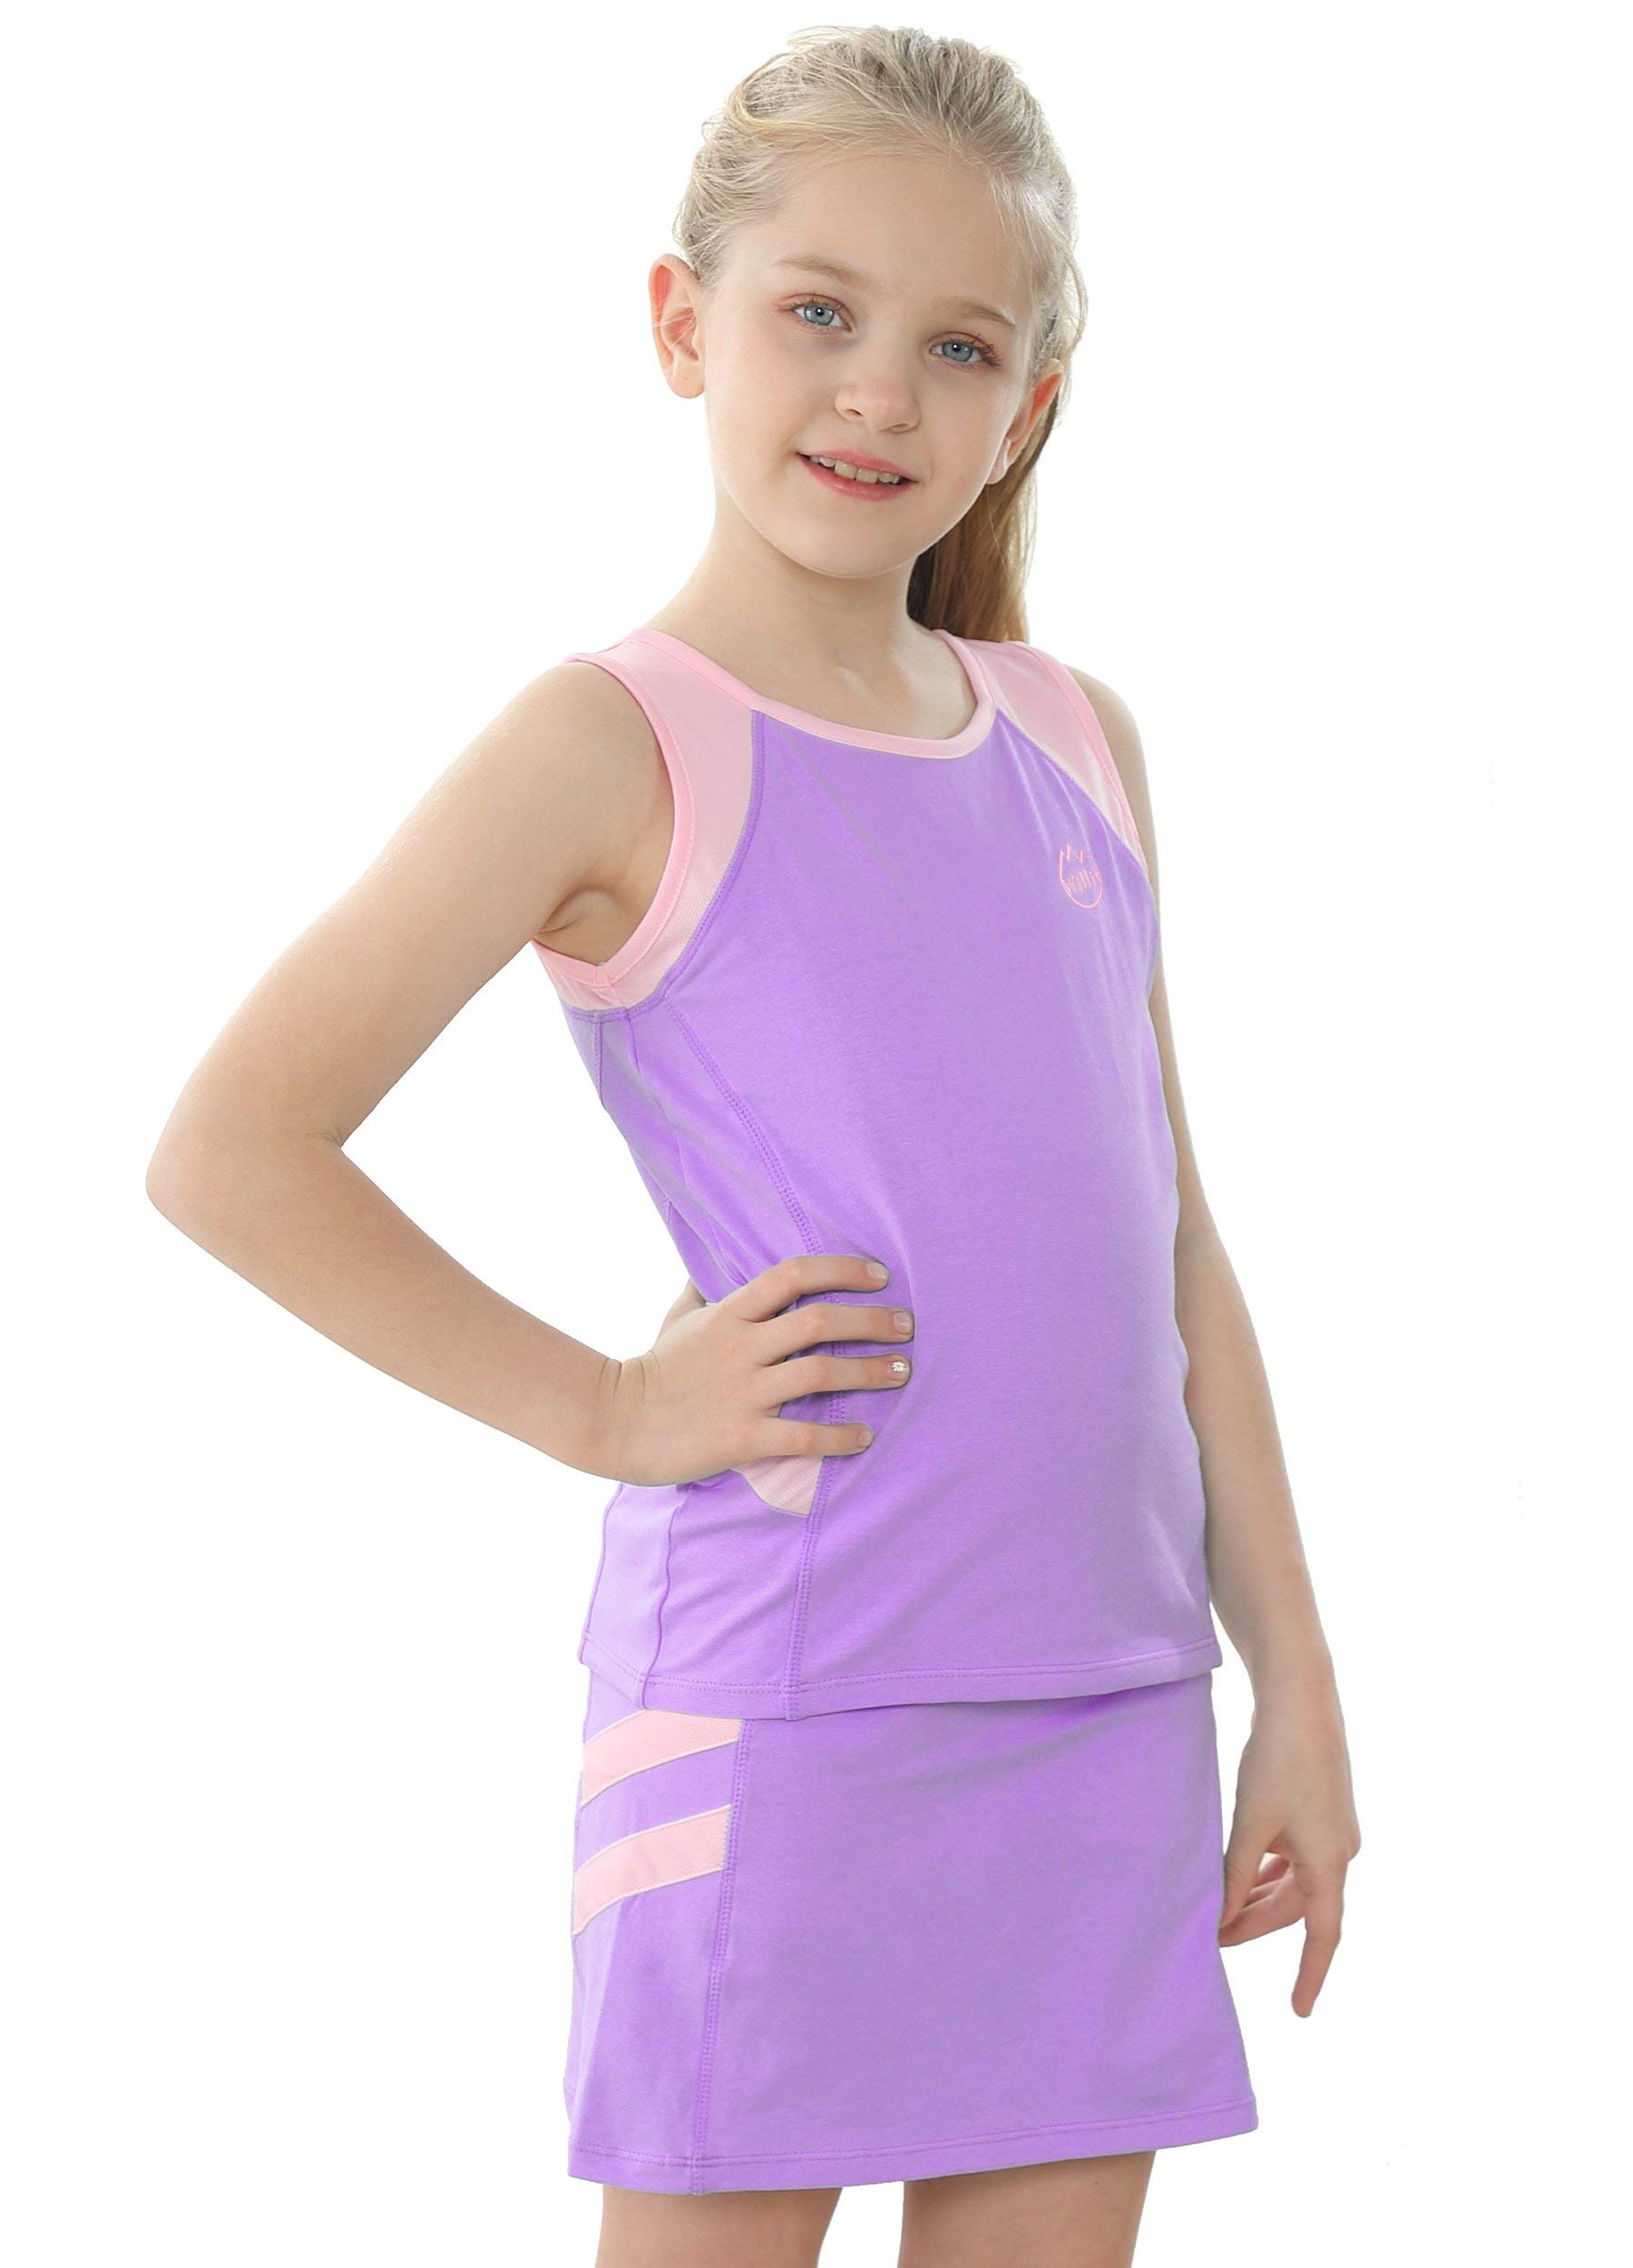 Willit Girls Tennis Golf Tank and Skirt Cotton Tennis Set Outfit Dress with Built in Shorts